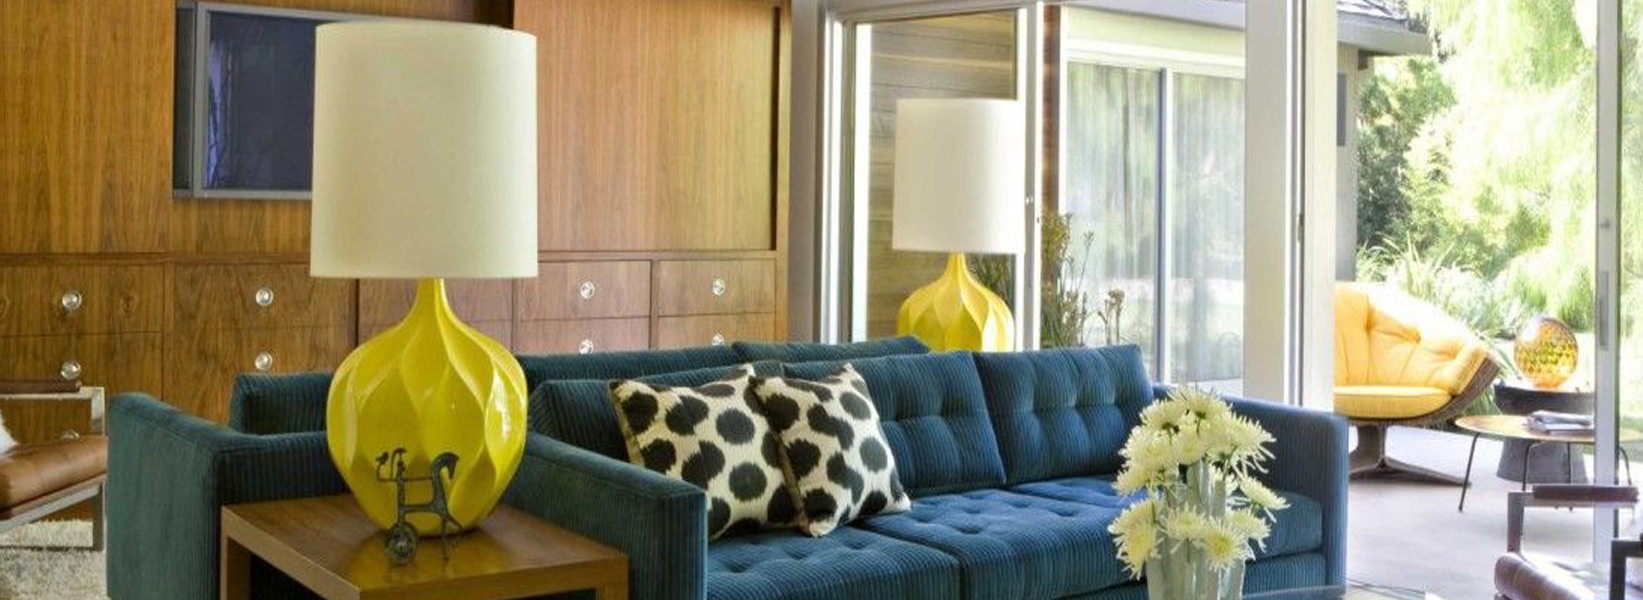 Decorate Your Space in the Style of Midcentury Modern